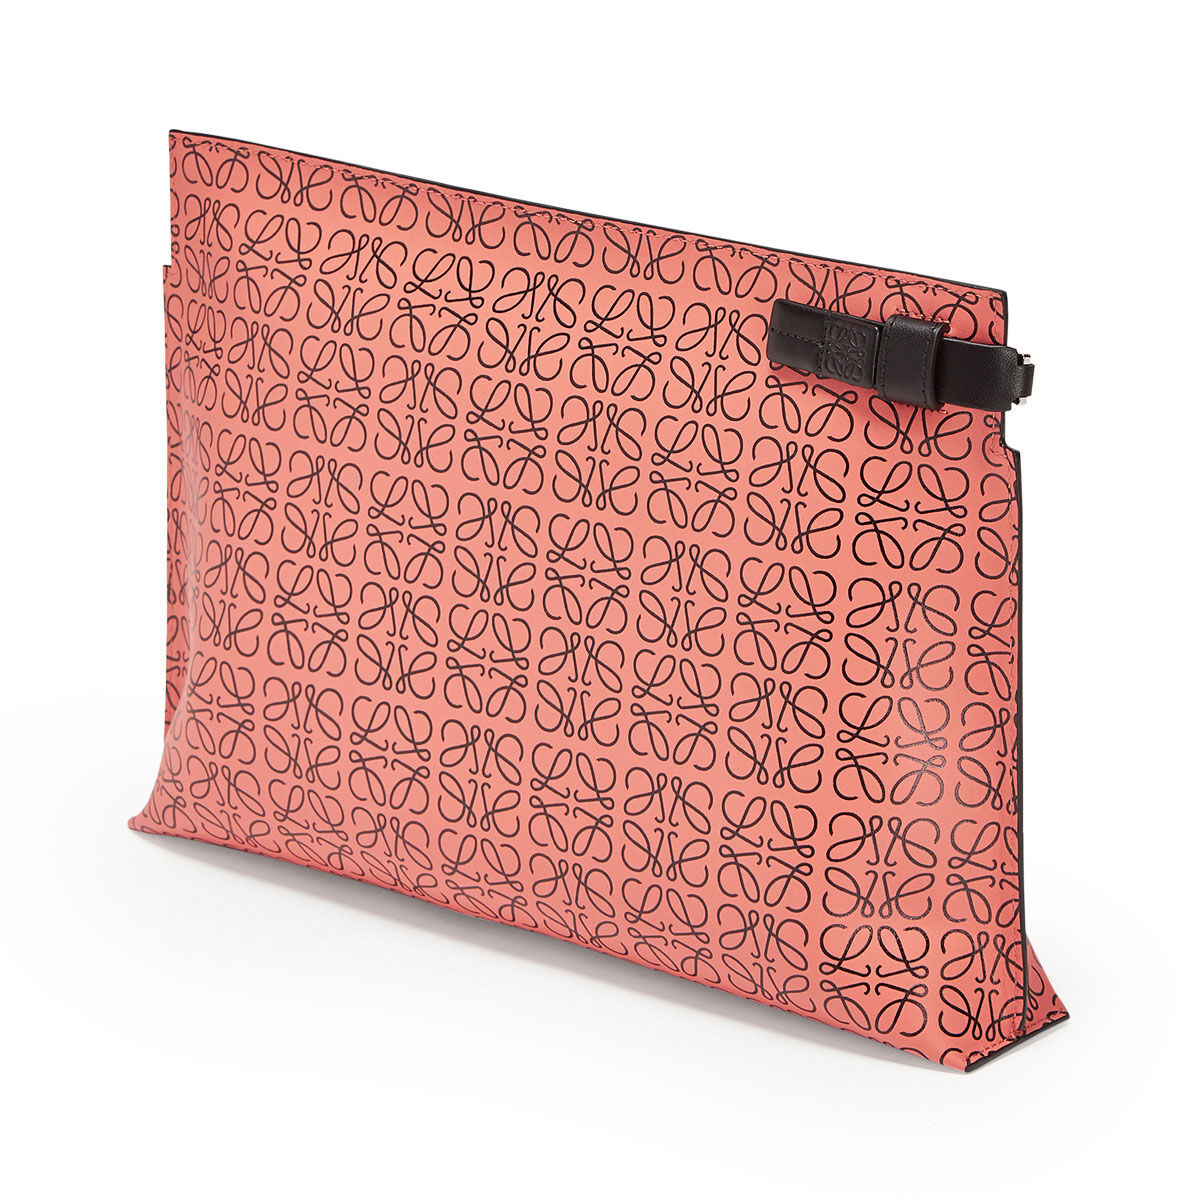 LOEWE T Pouch Repeat Rosa Tulipan/Negro all